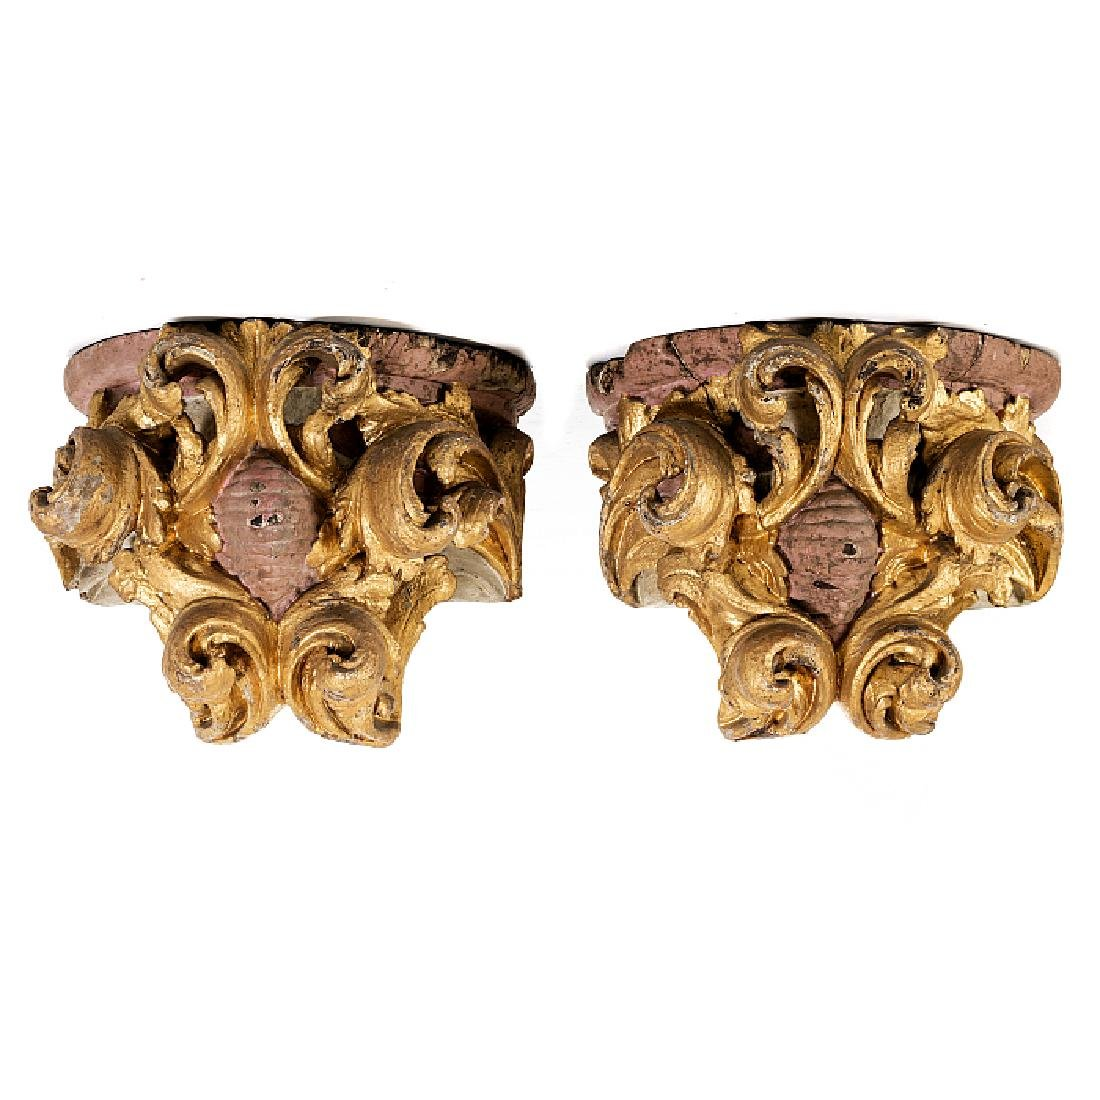 Pair of wall brackets with plant motifs